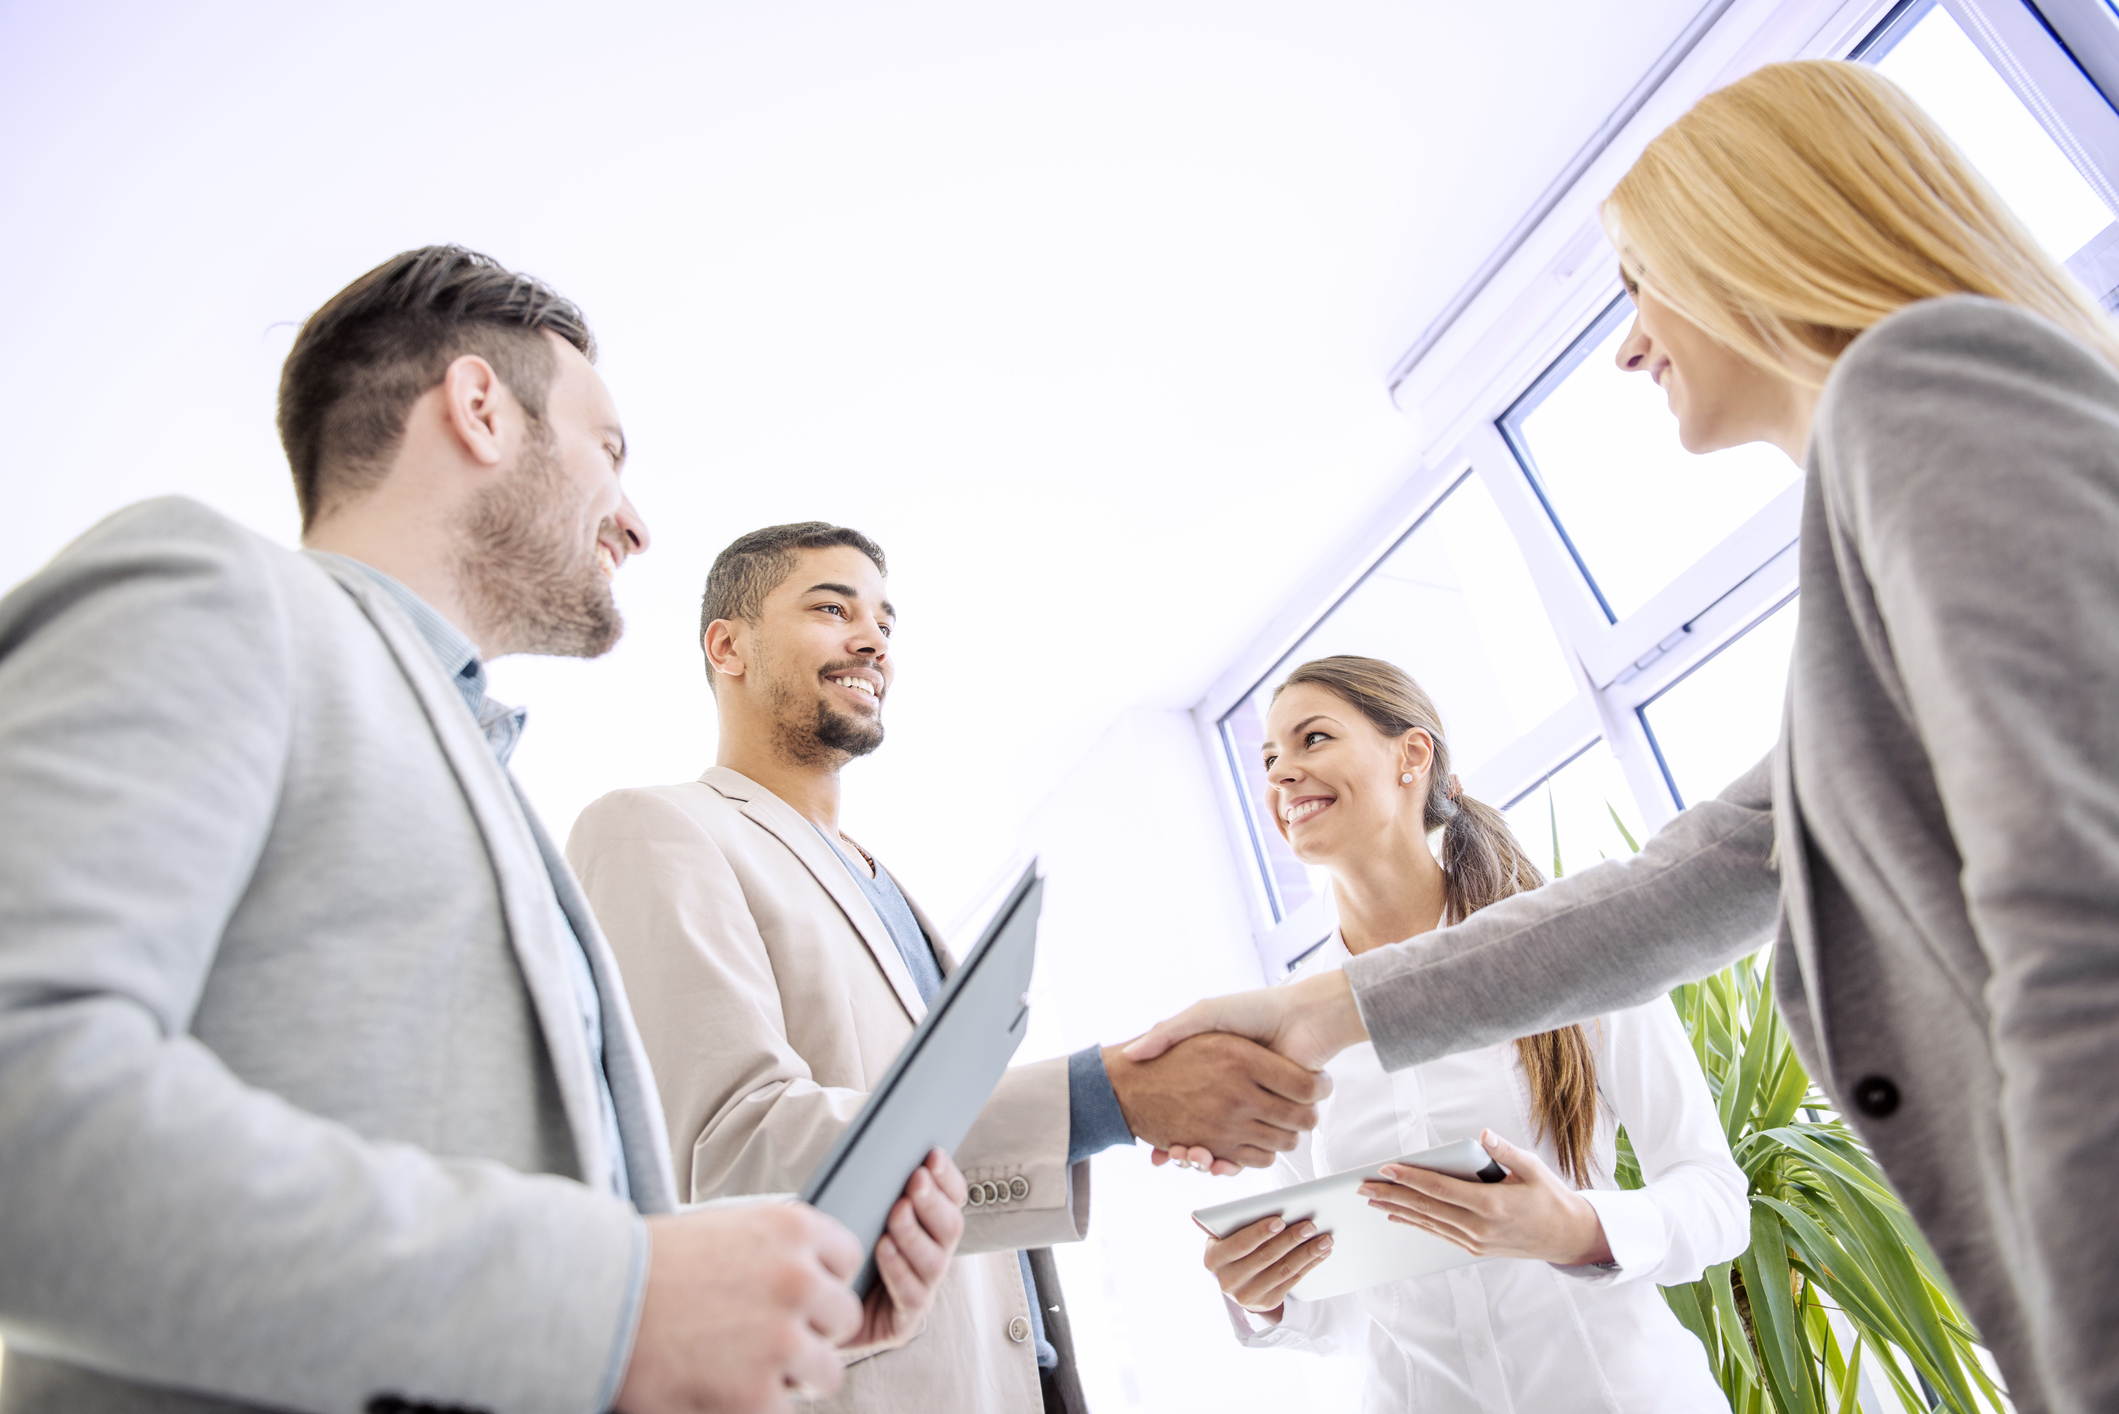 Tips For Building Strong Business Relationships